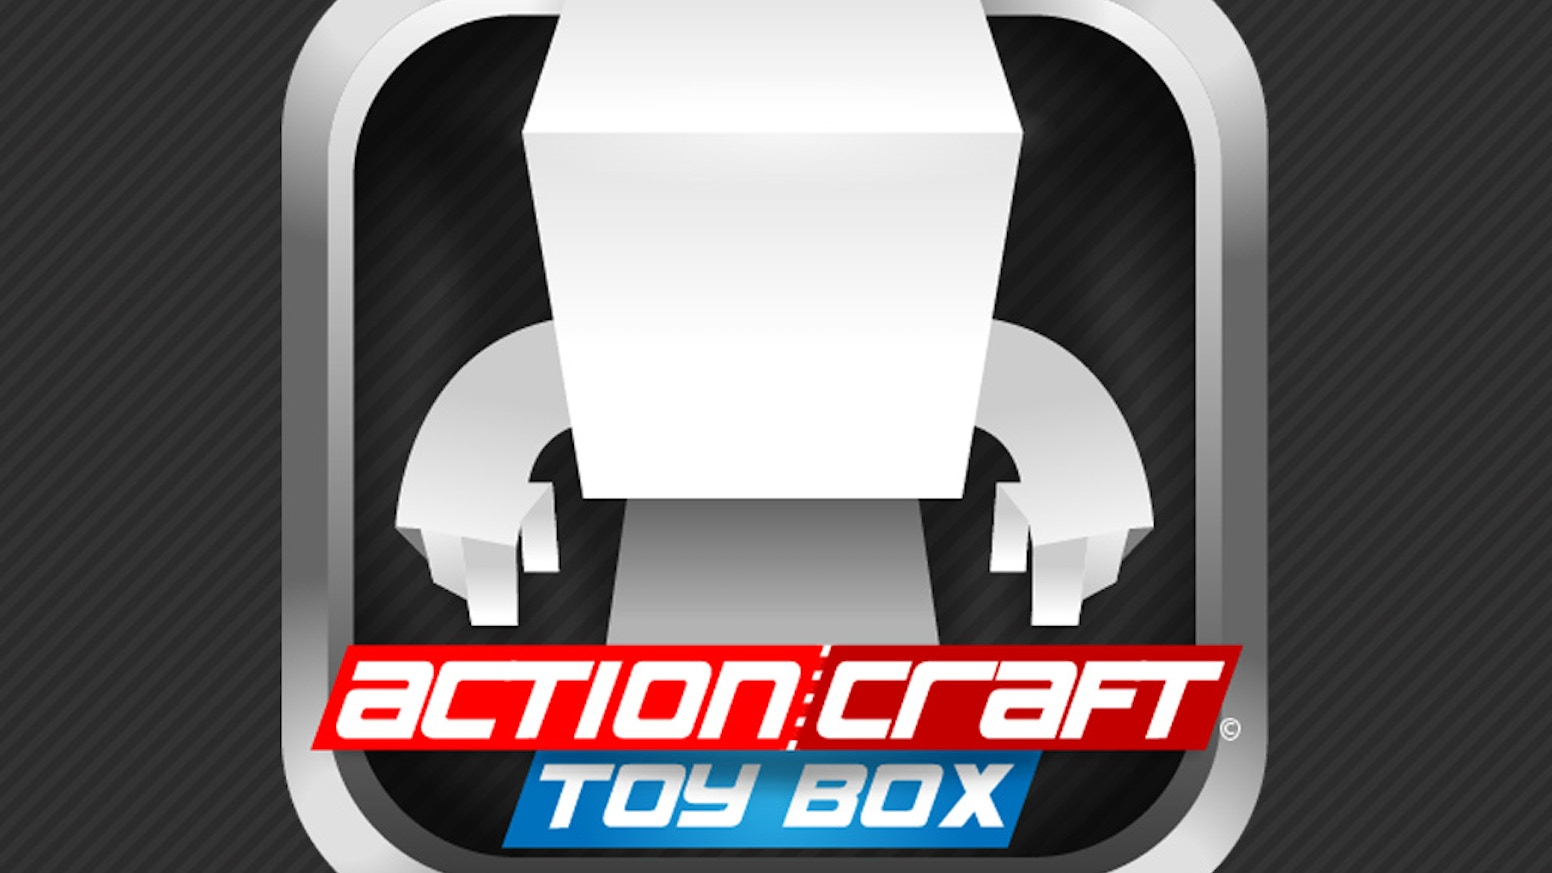 Design your own paper toy, print it, build it and share! Let's craft with ActionCraft!